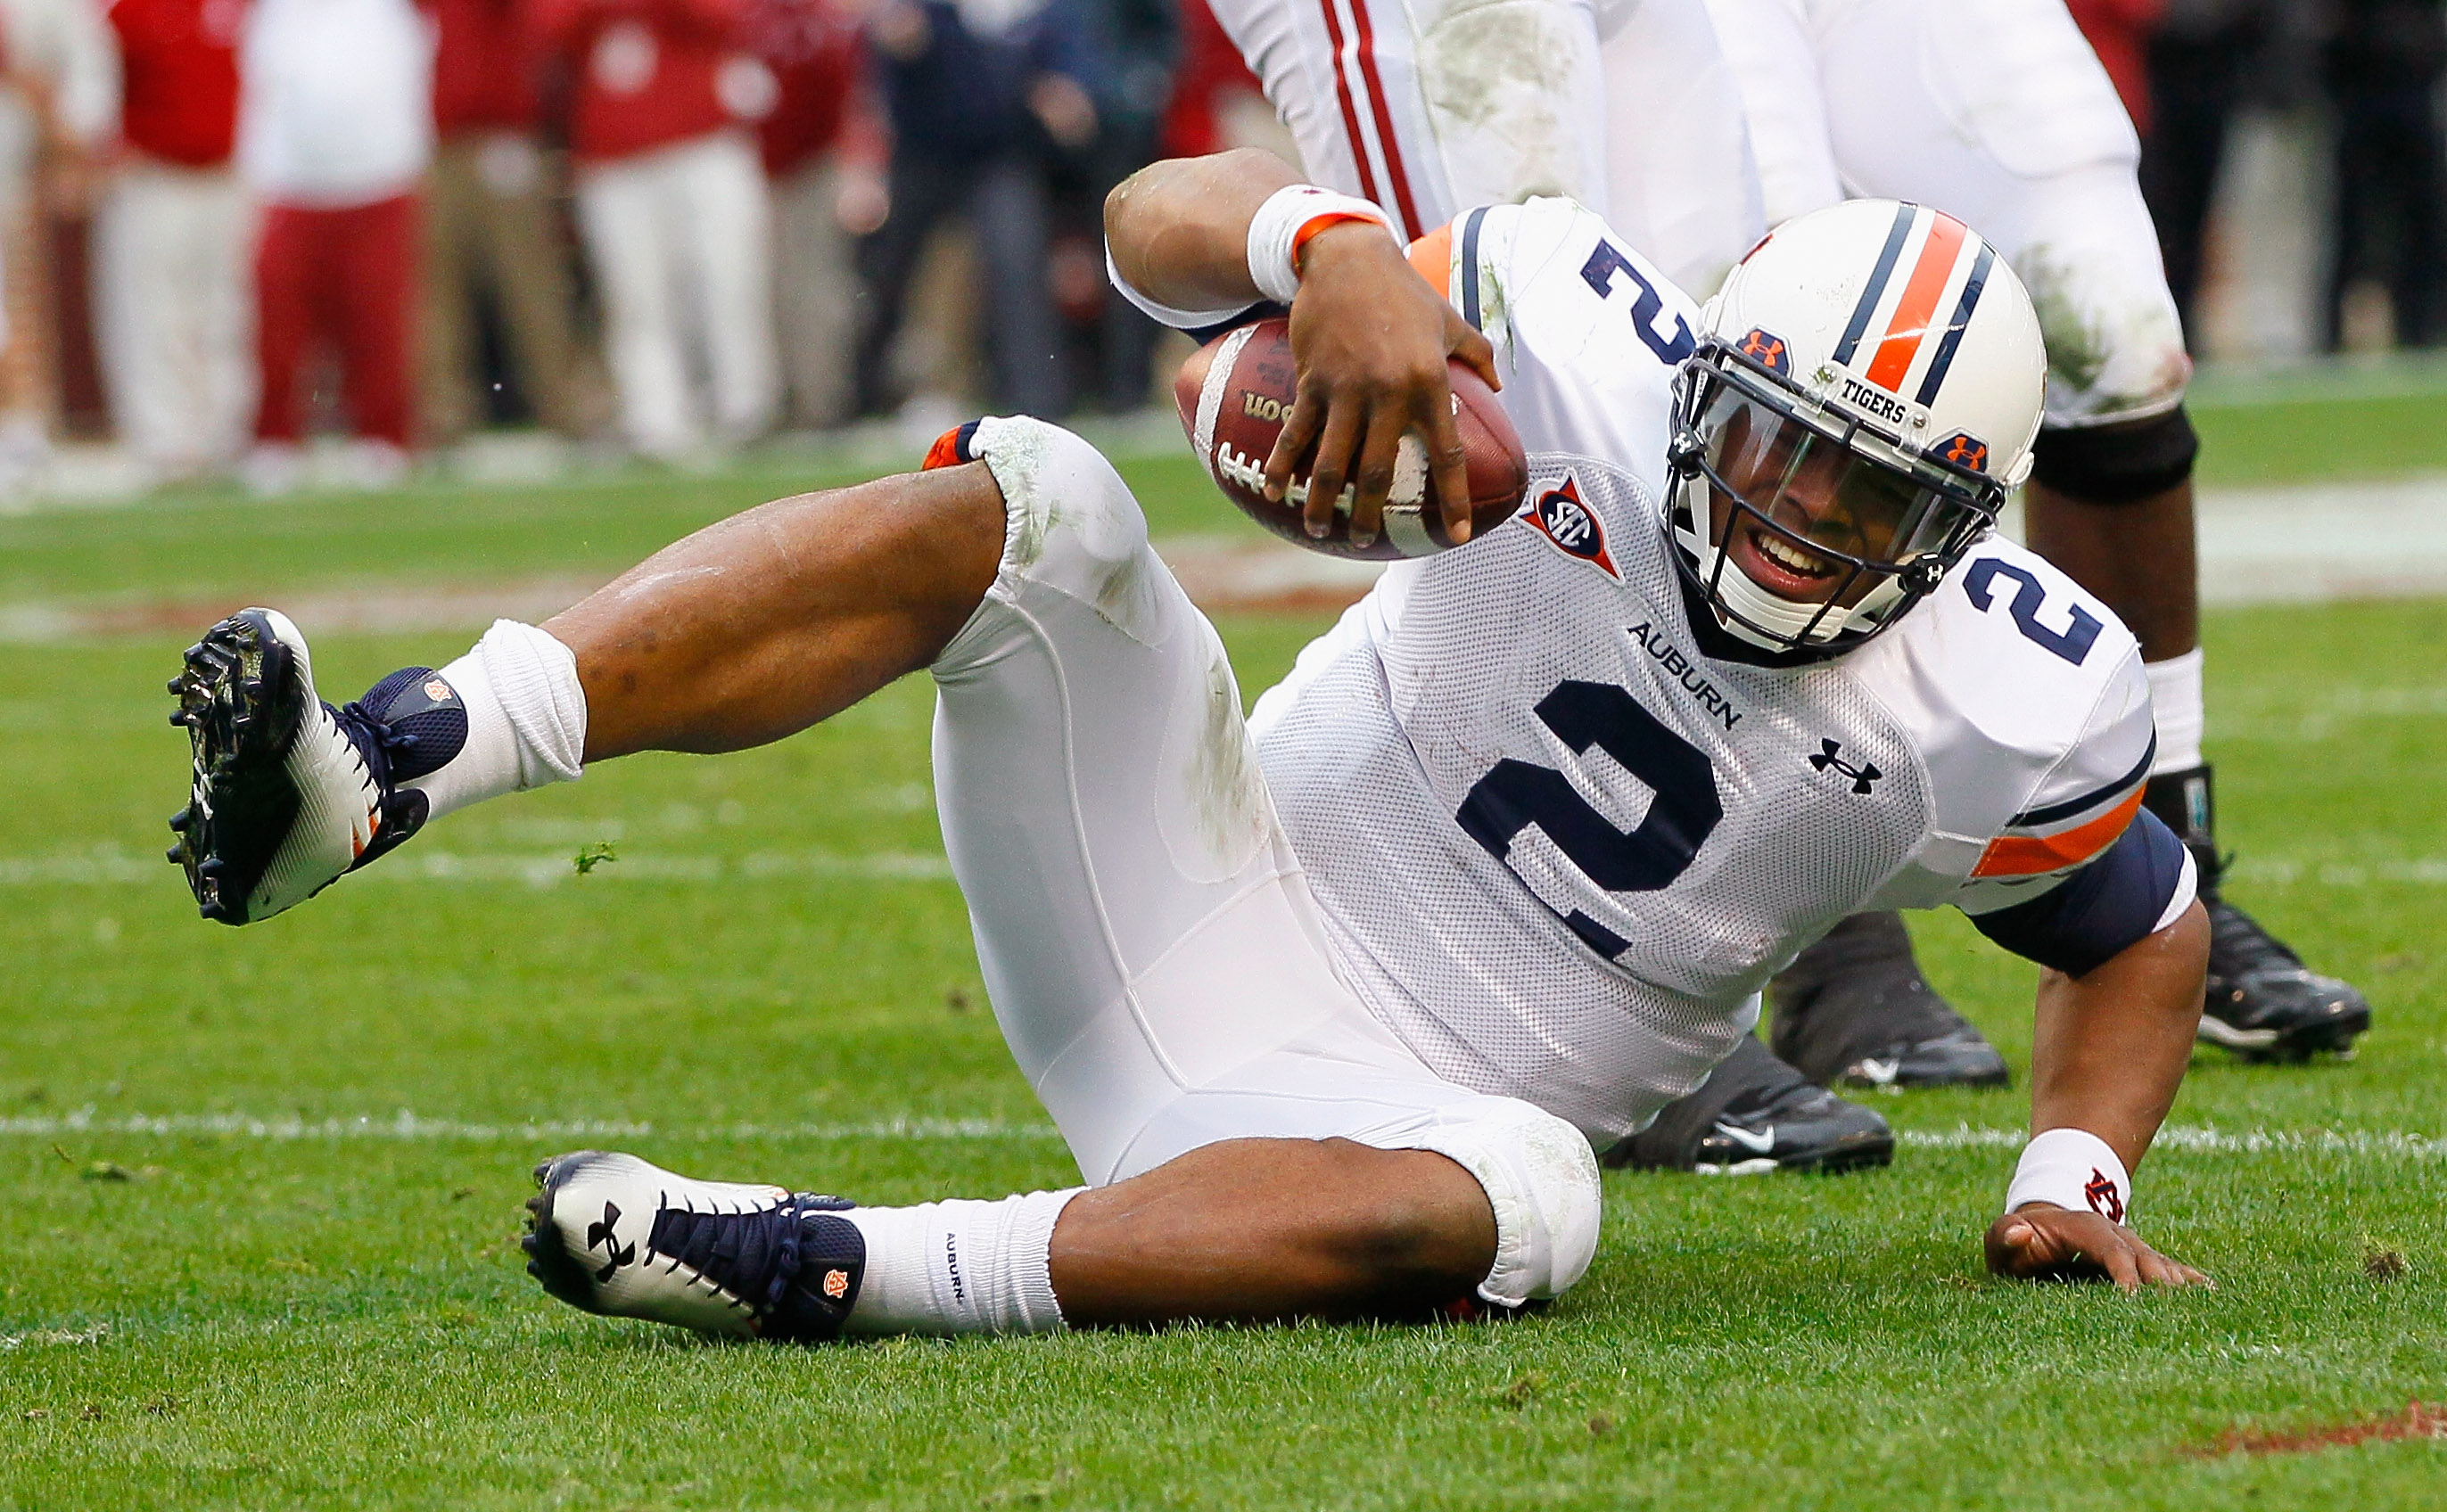 TUSCALOOSA, AL - NOVEMBER 26:  Quarterback Cam Newton #2 of the Auburn Tigers reacts after failing to convert a third down against the Alabama Crimson Tide at Bryant-Denny Stadium on November 26, 2010 in Tuscaloosa, Alabama.  (Photo by Kevin C. Cox/Getty